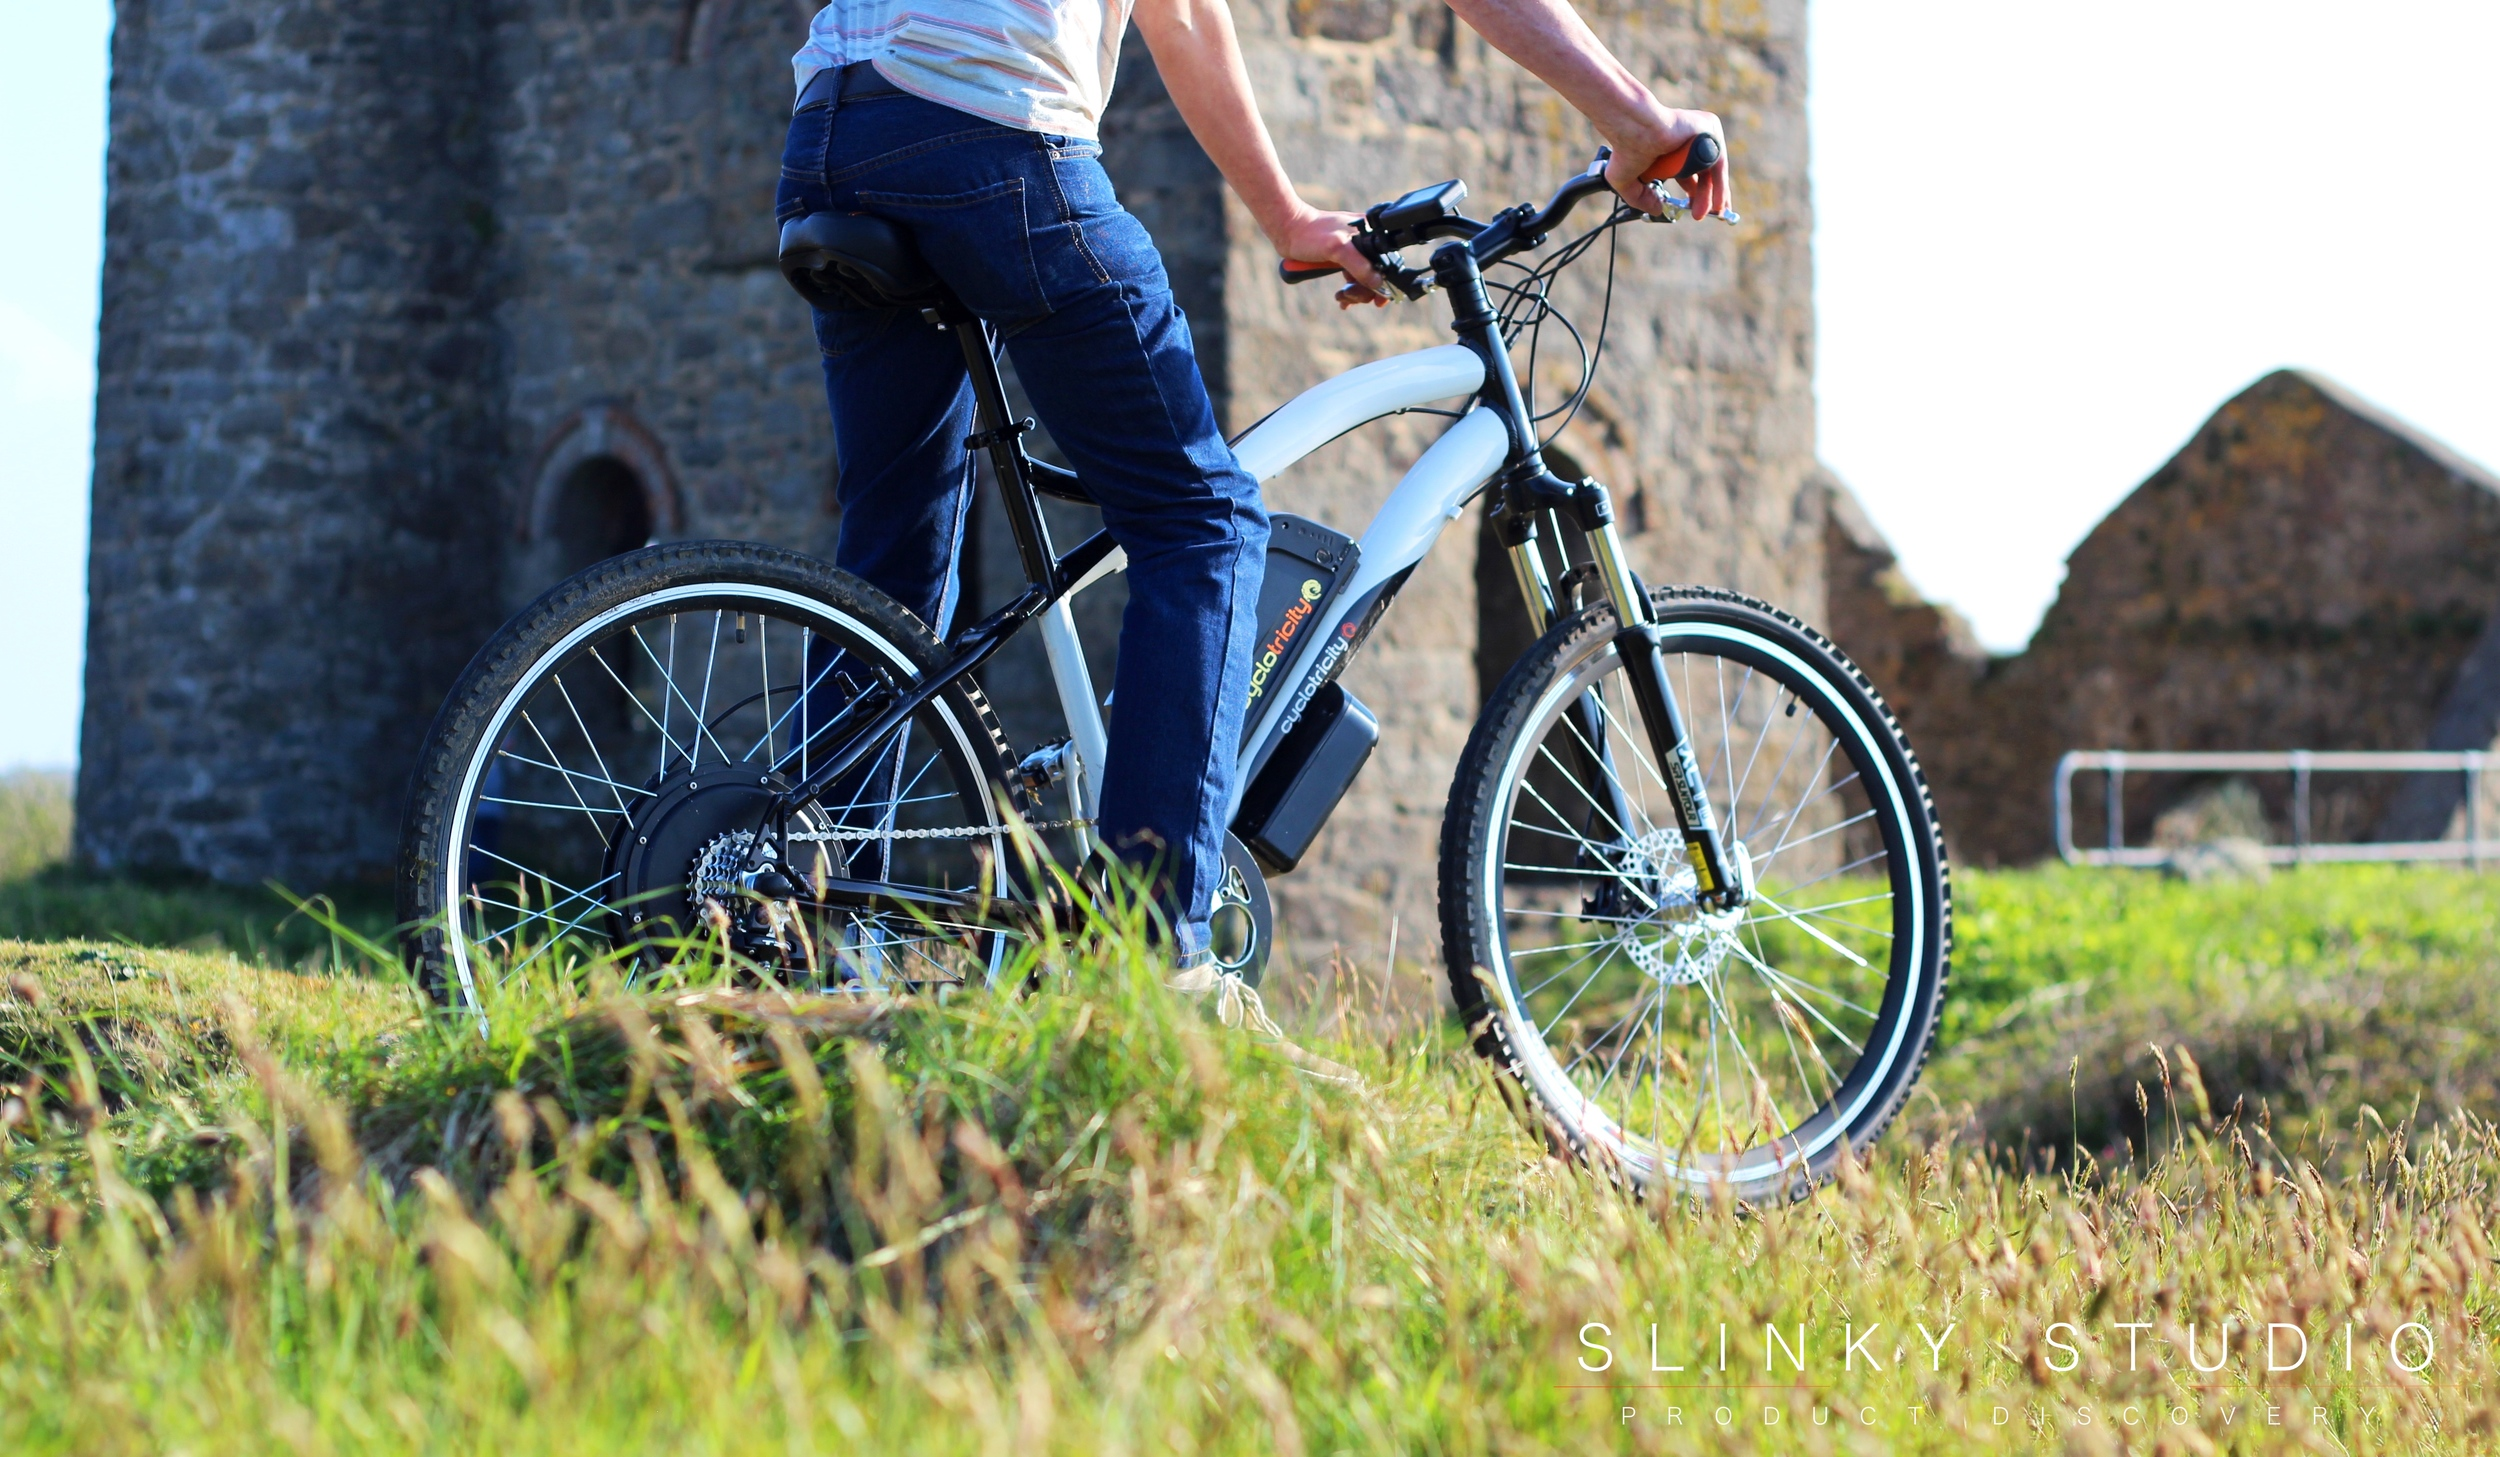 Cyclotricity Stealth eBike Riding in Cornwall Countryside Jump.jpg